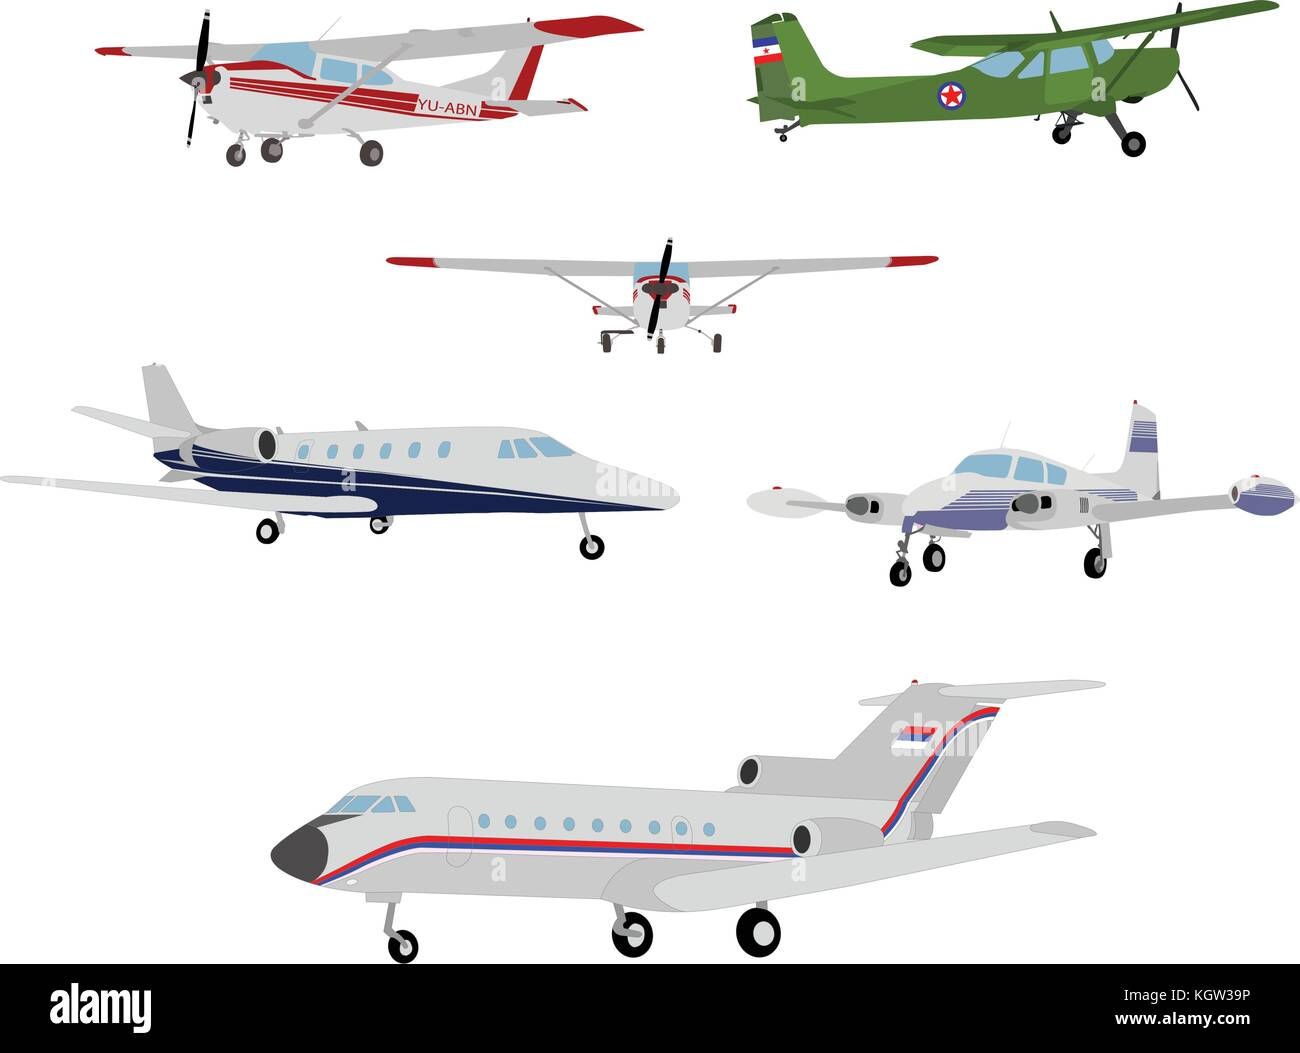 airplanes illustration - vector - Stock Vector